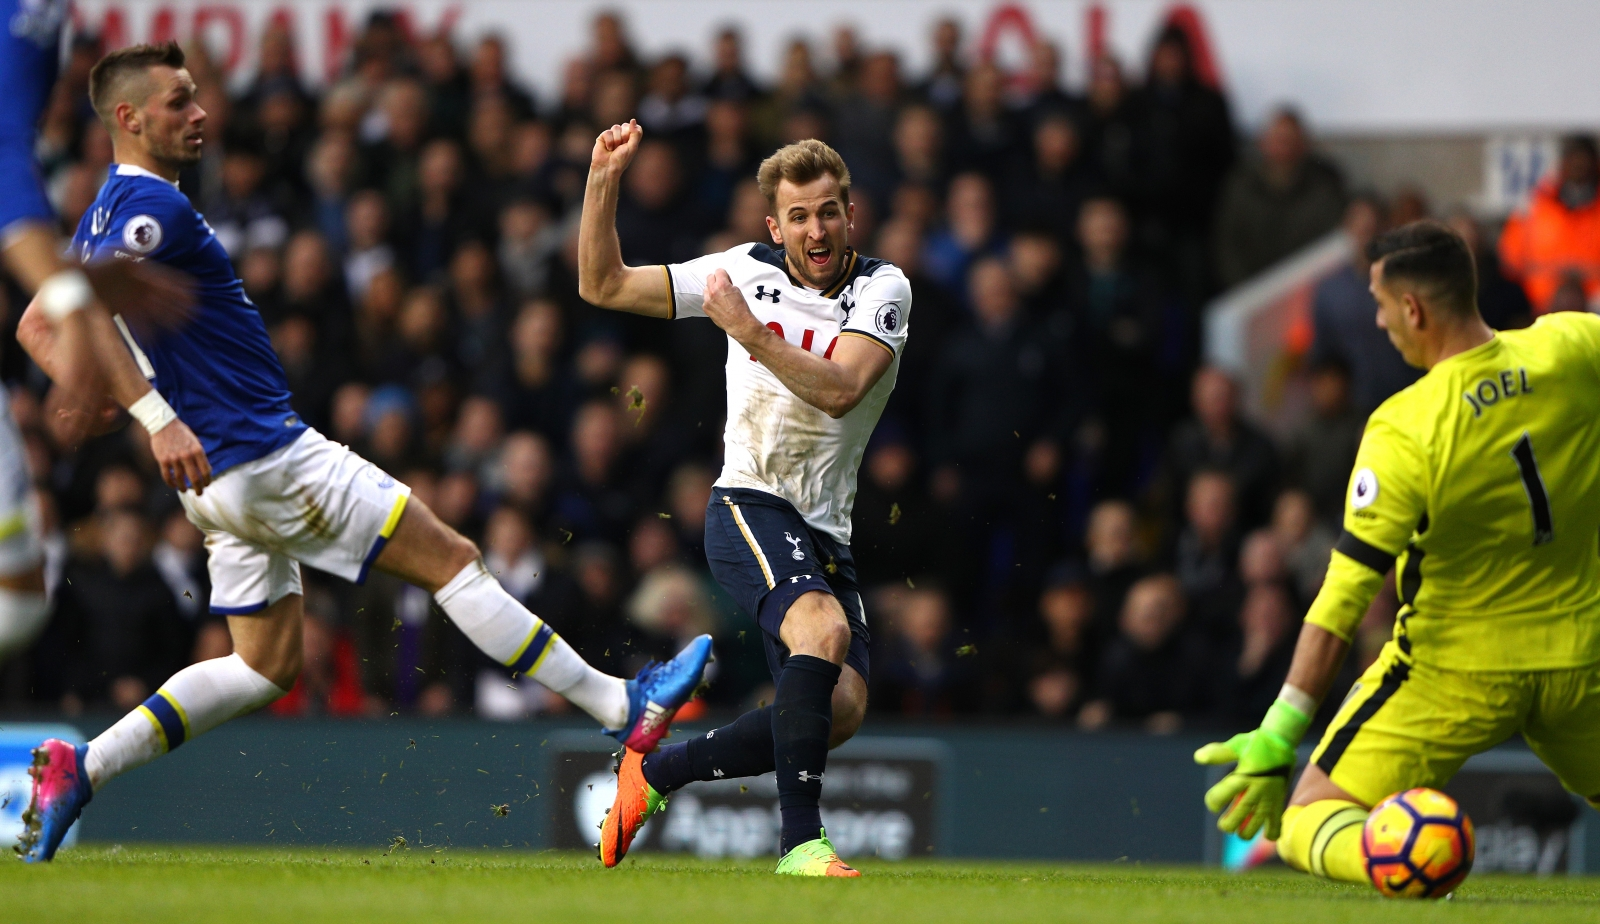 Kane nets brace, Spurs top Everton